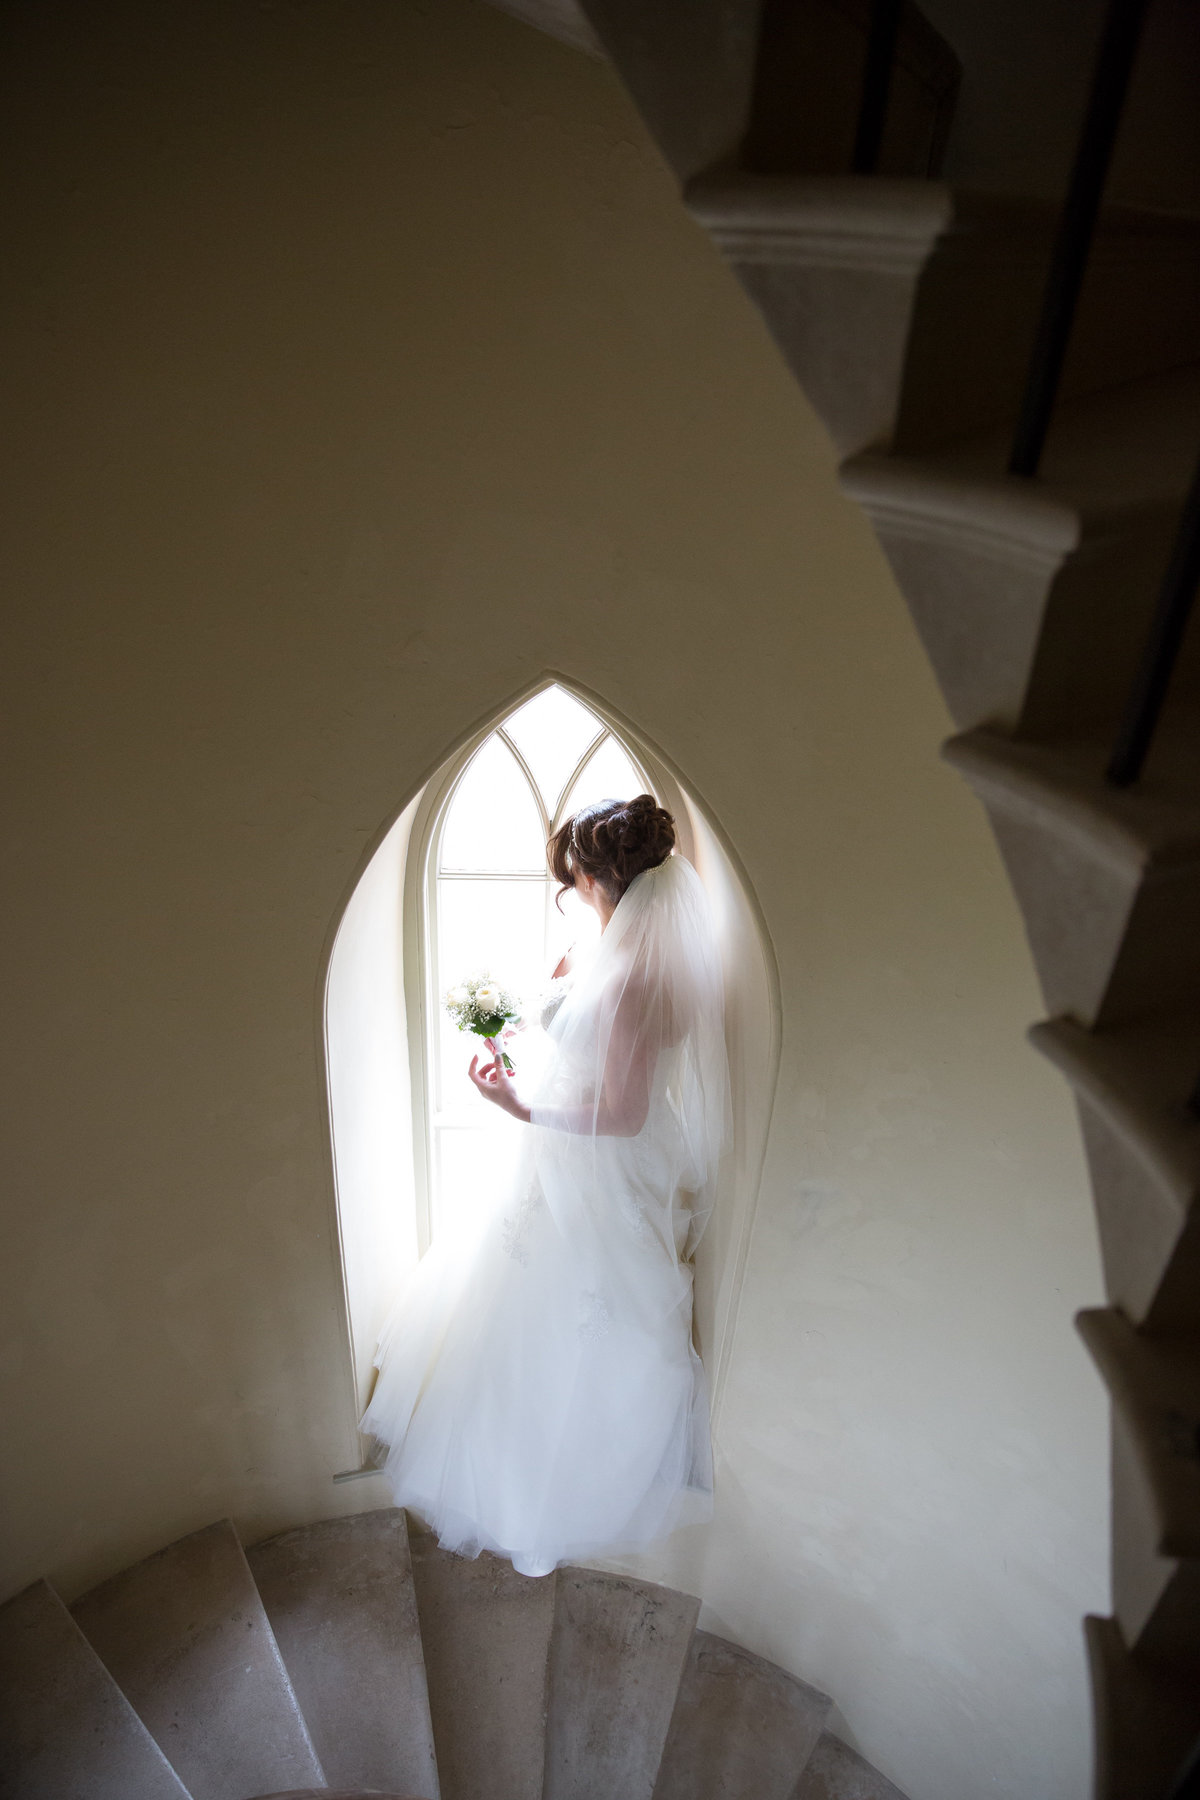 haldon belvedere bride on stairs devon